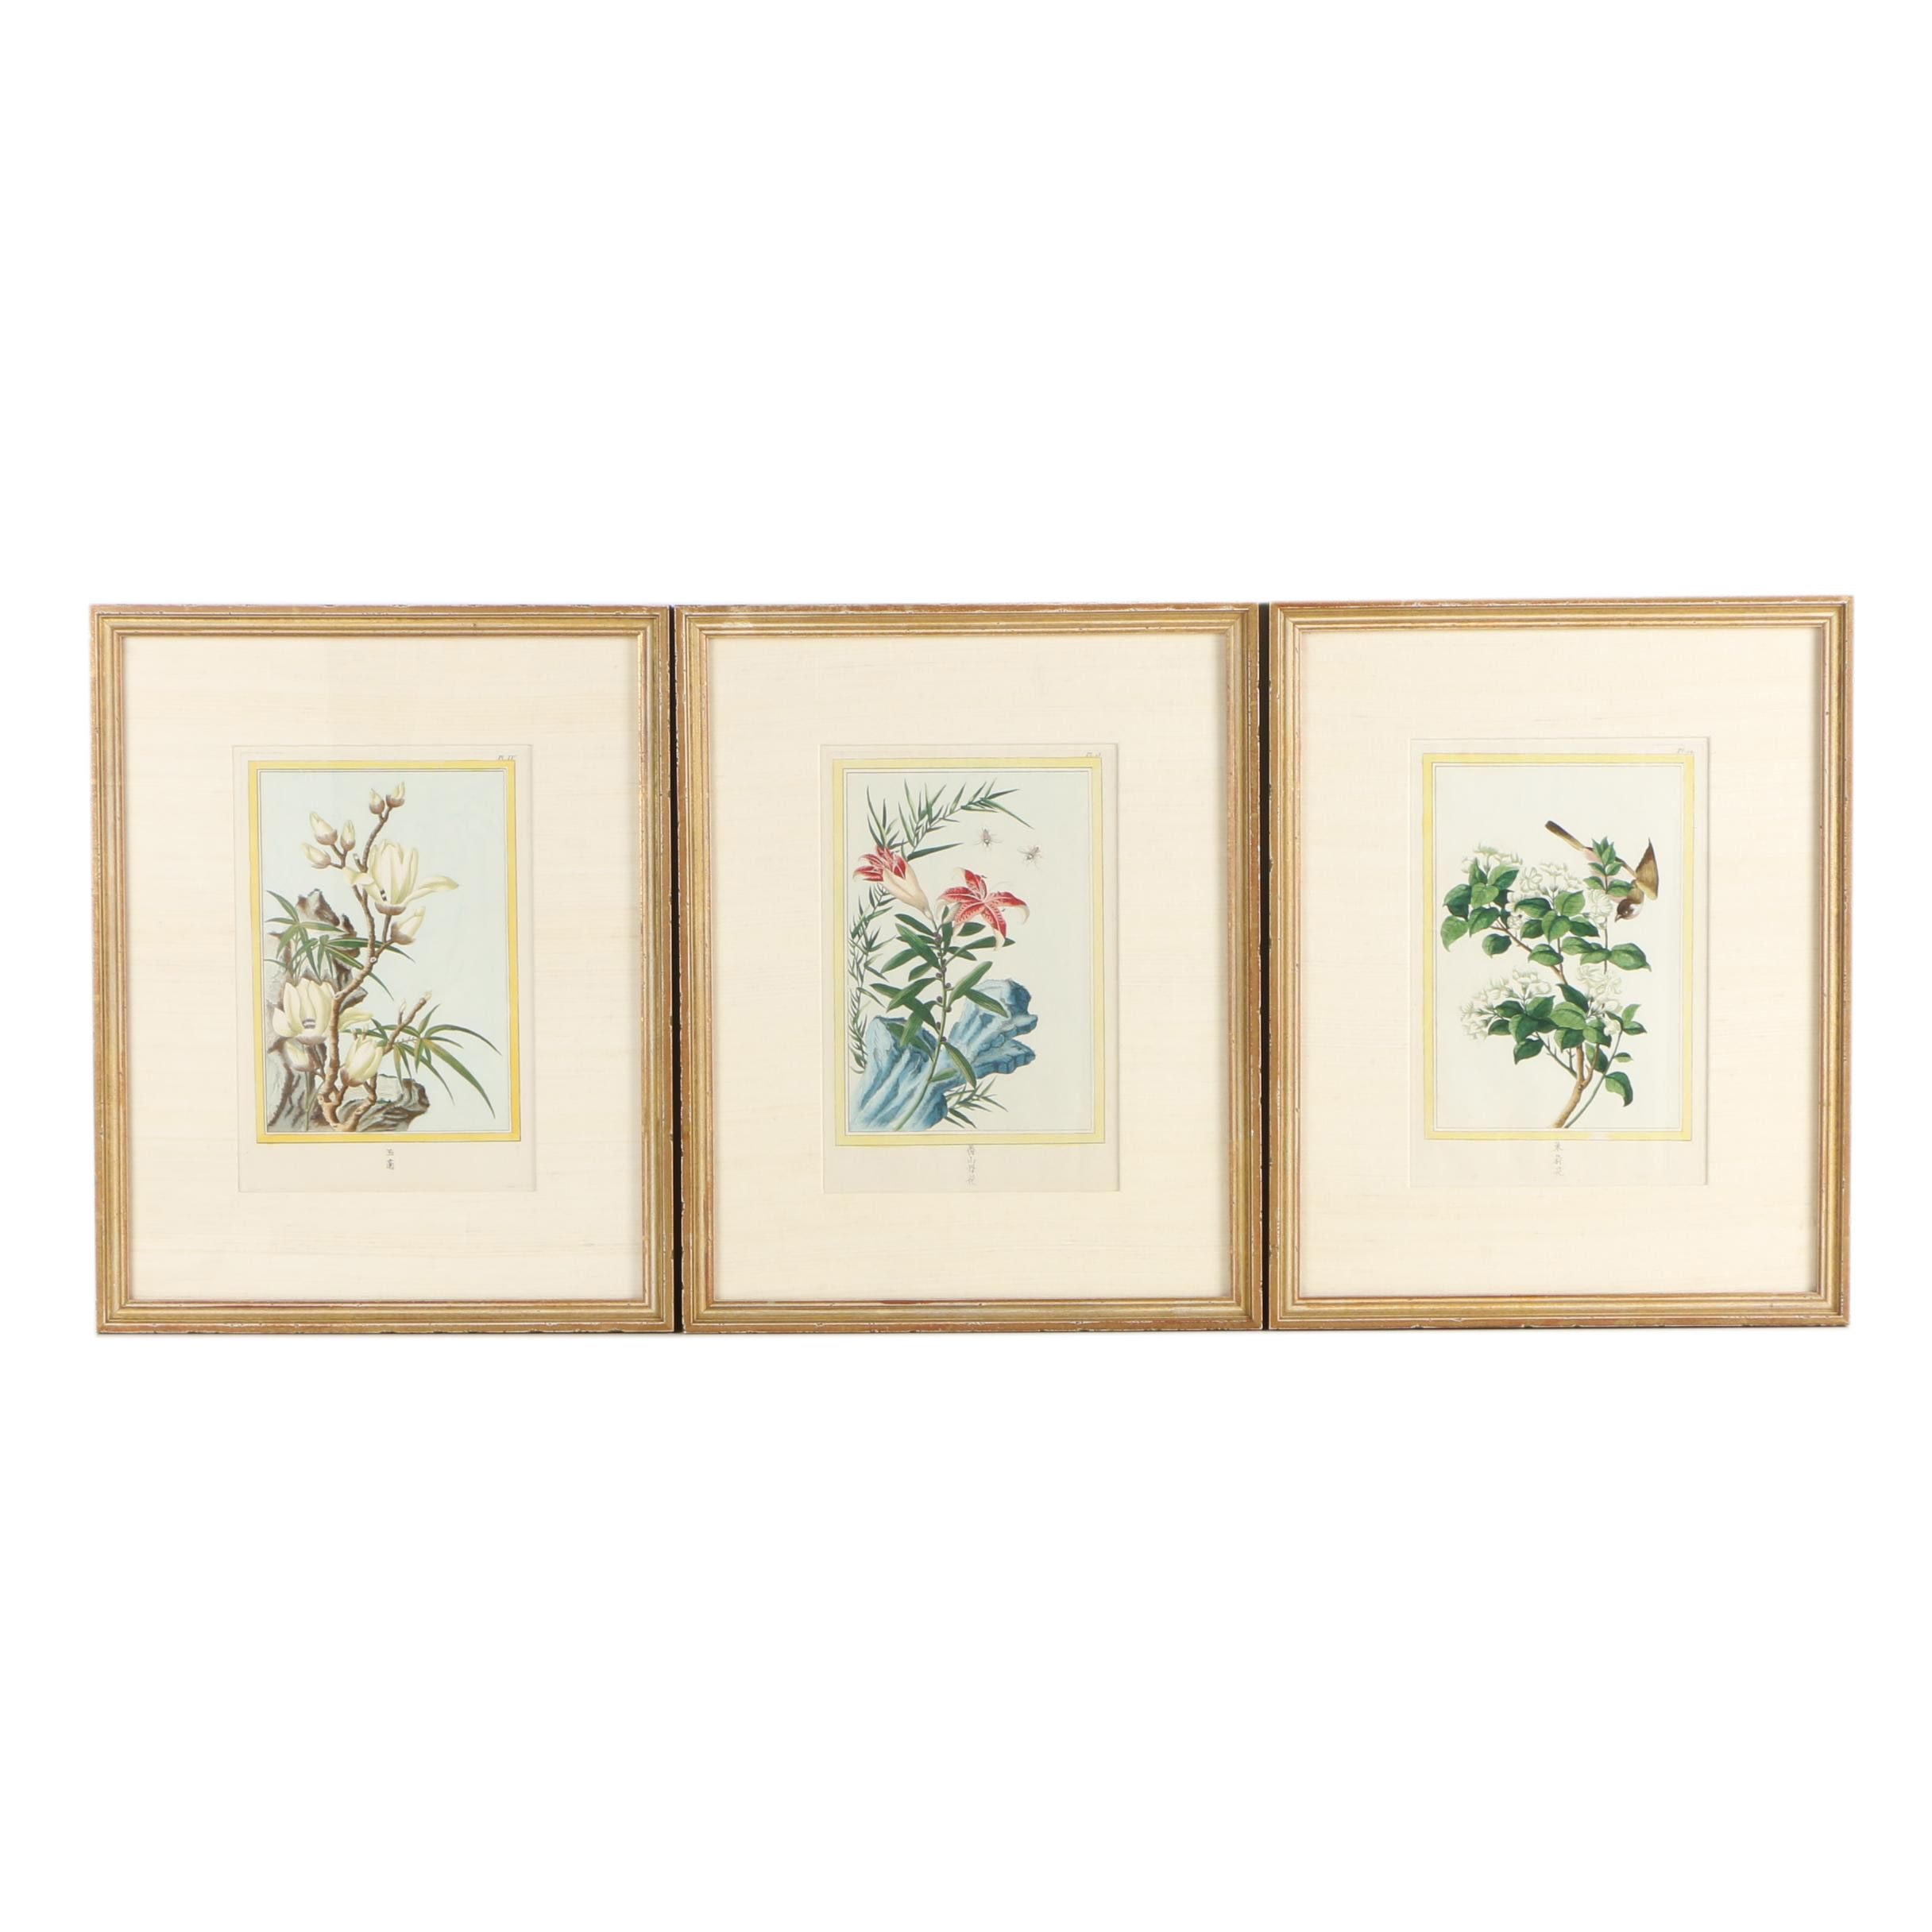 Hand-Colored Engravings of Botanical Studies